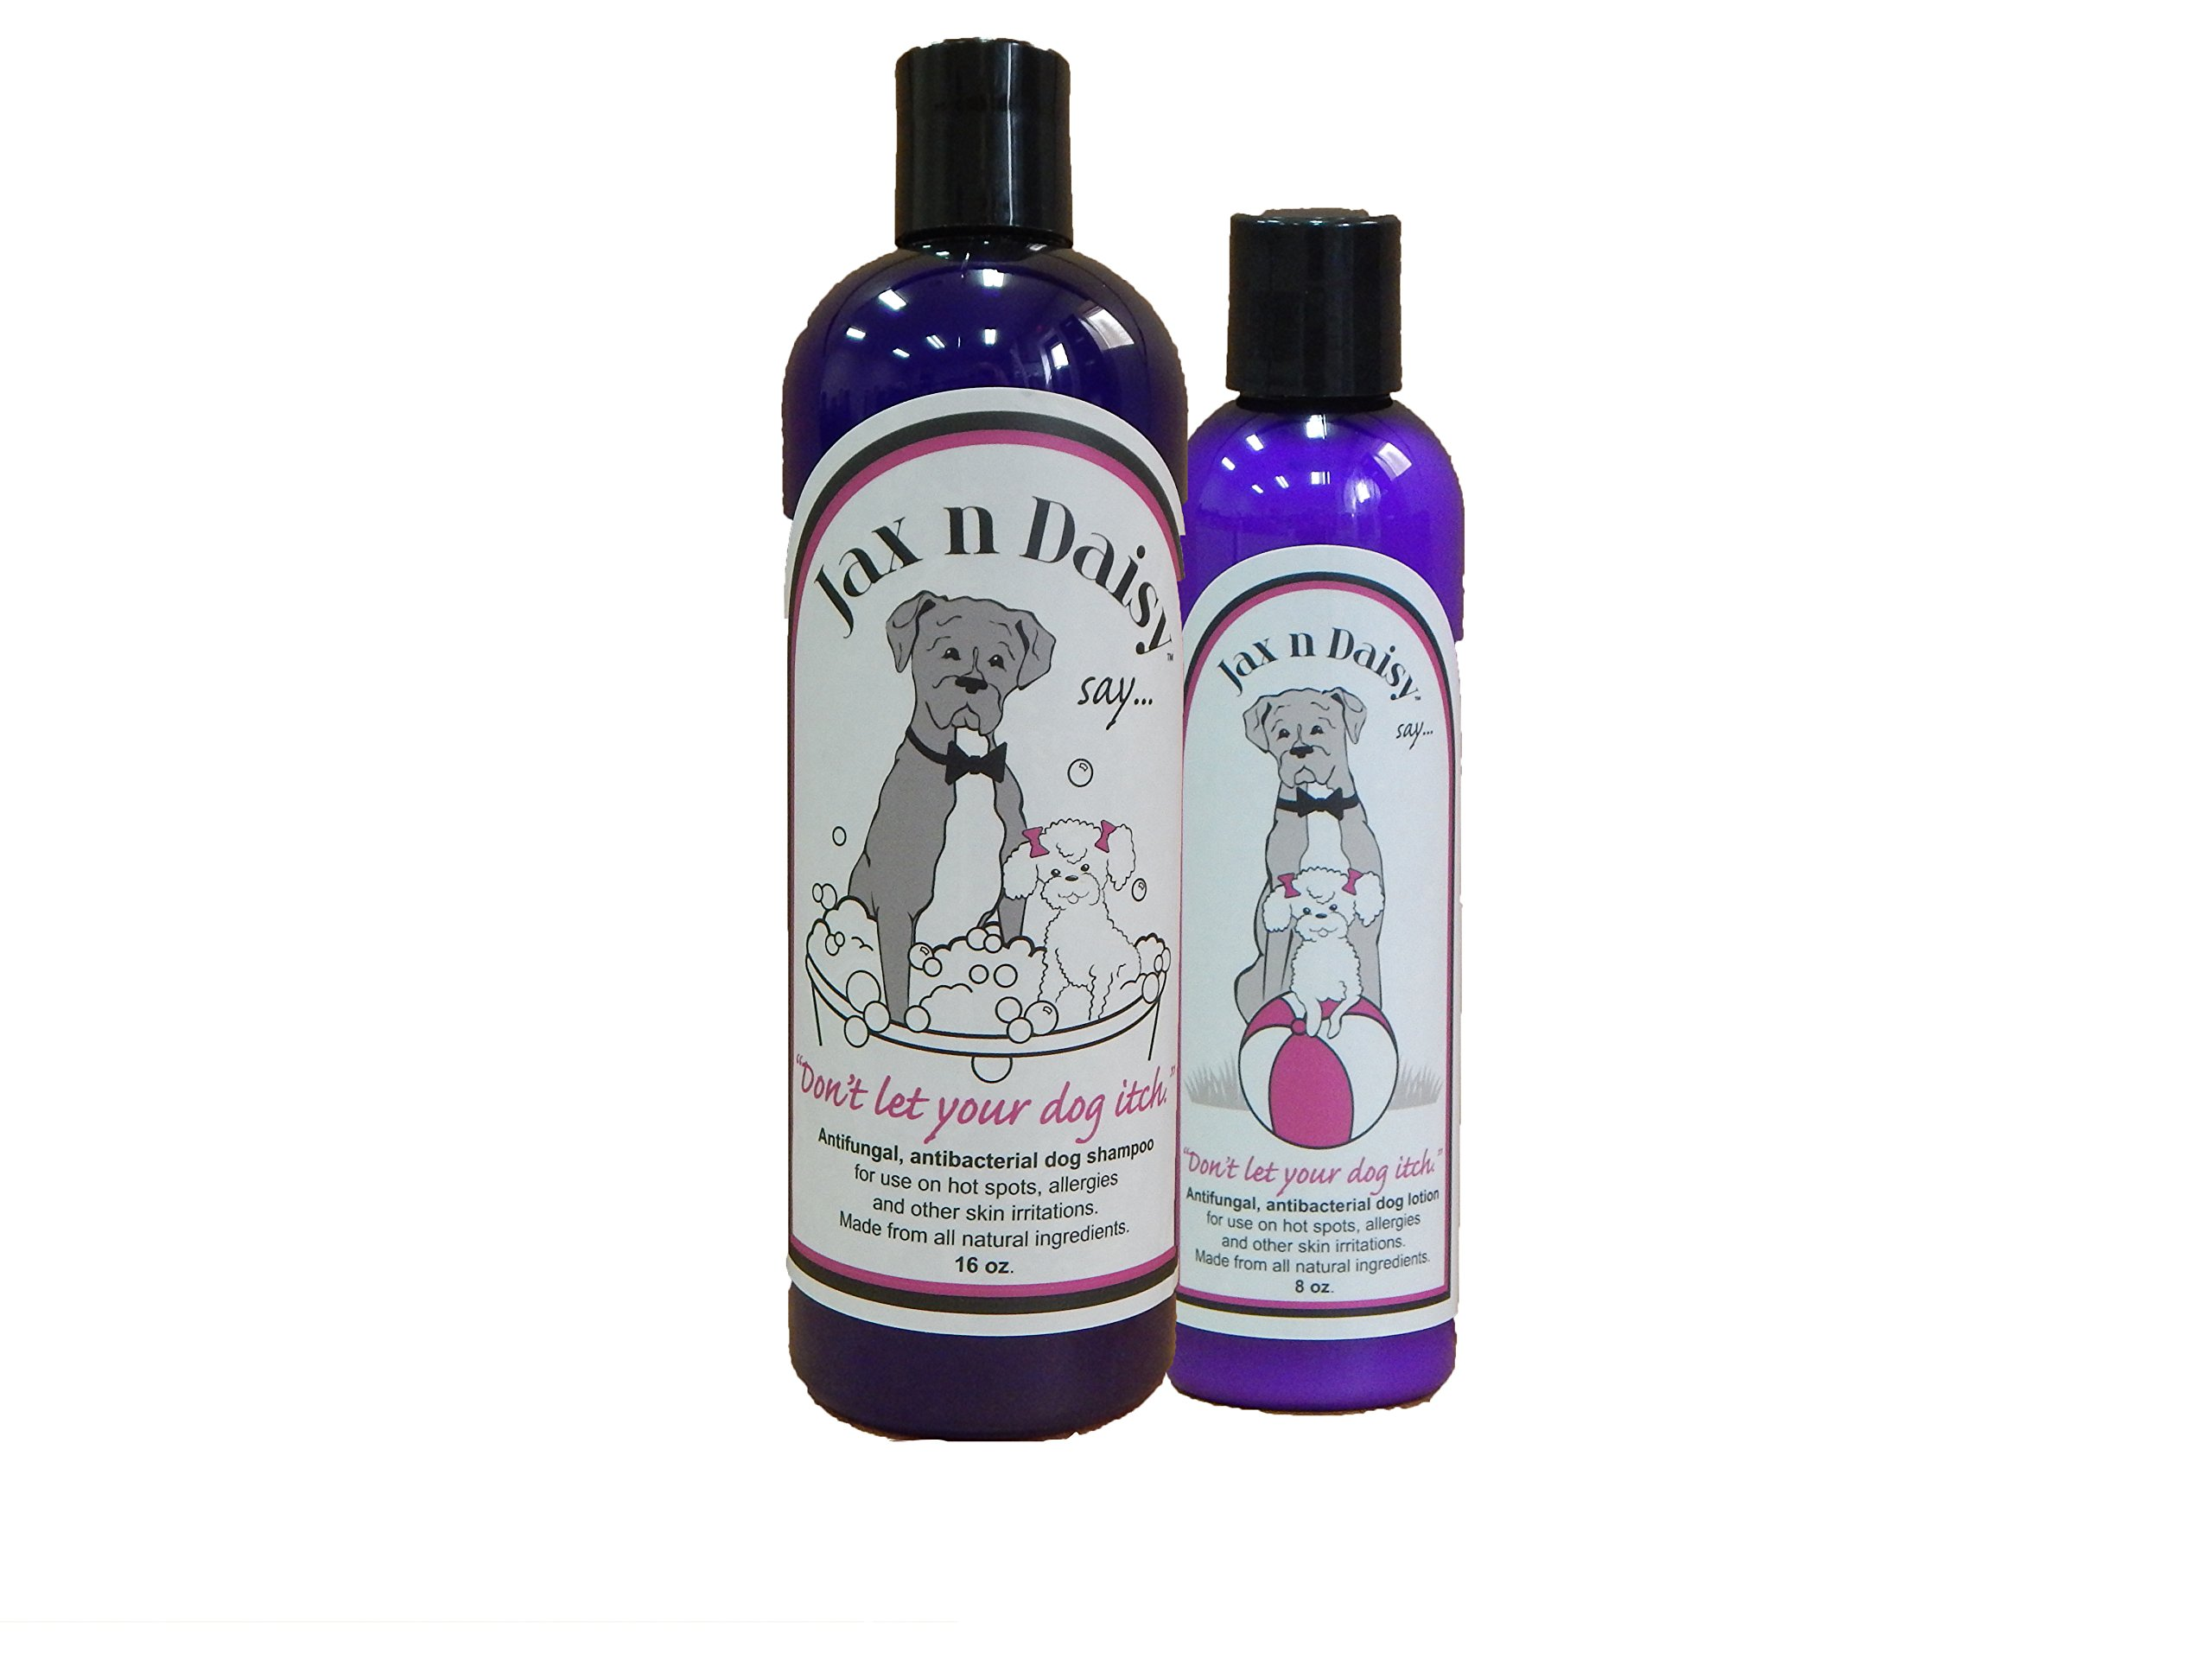 Jax N Daisy Dog Shampoo & Lotion by Jax N Daisy